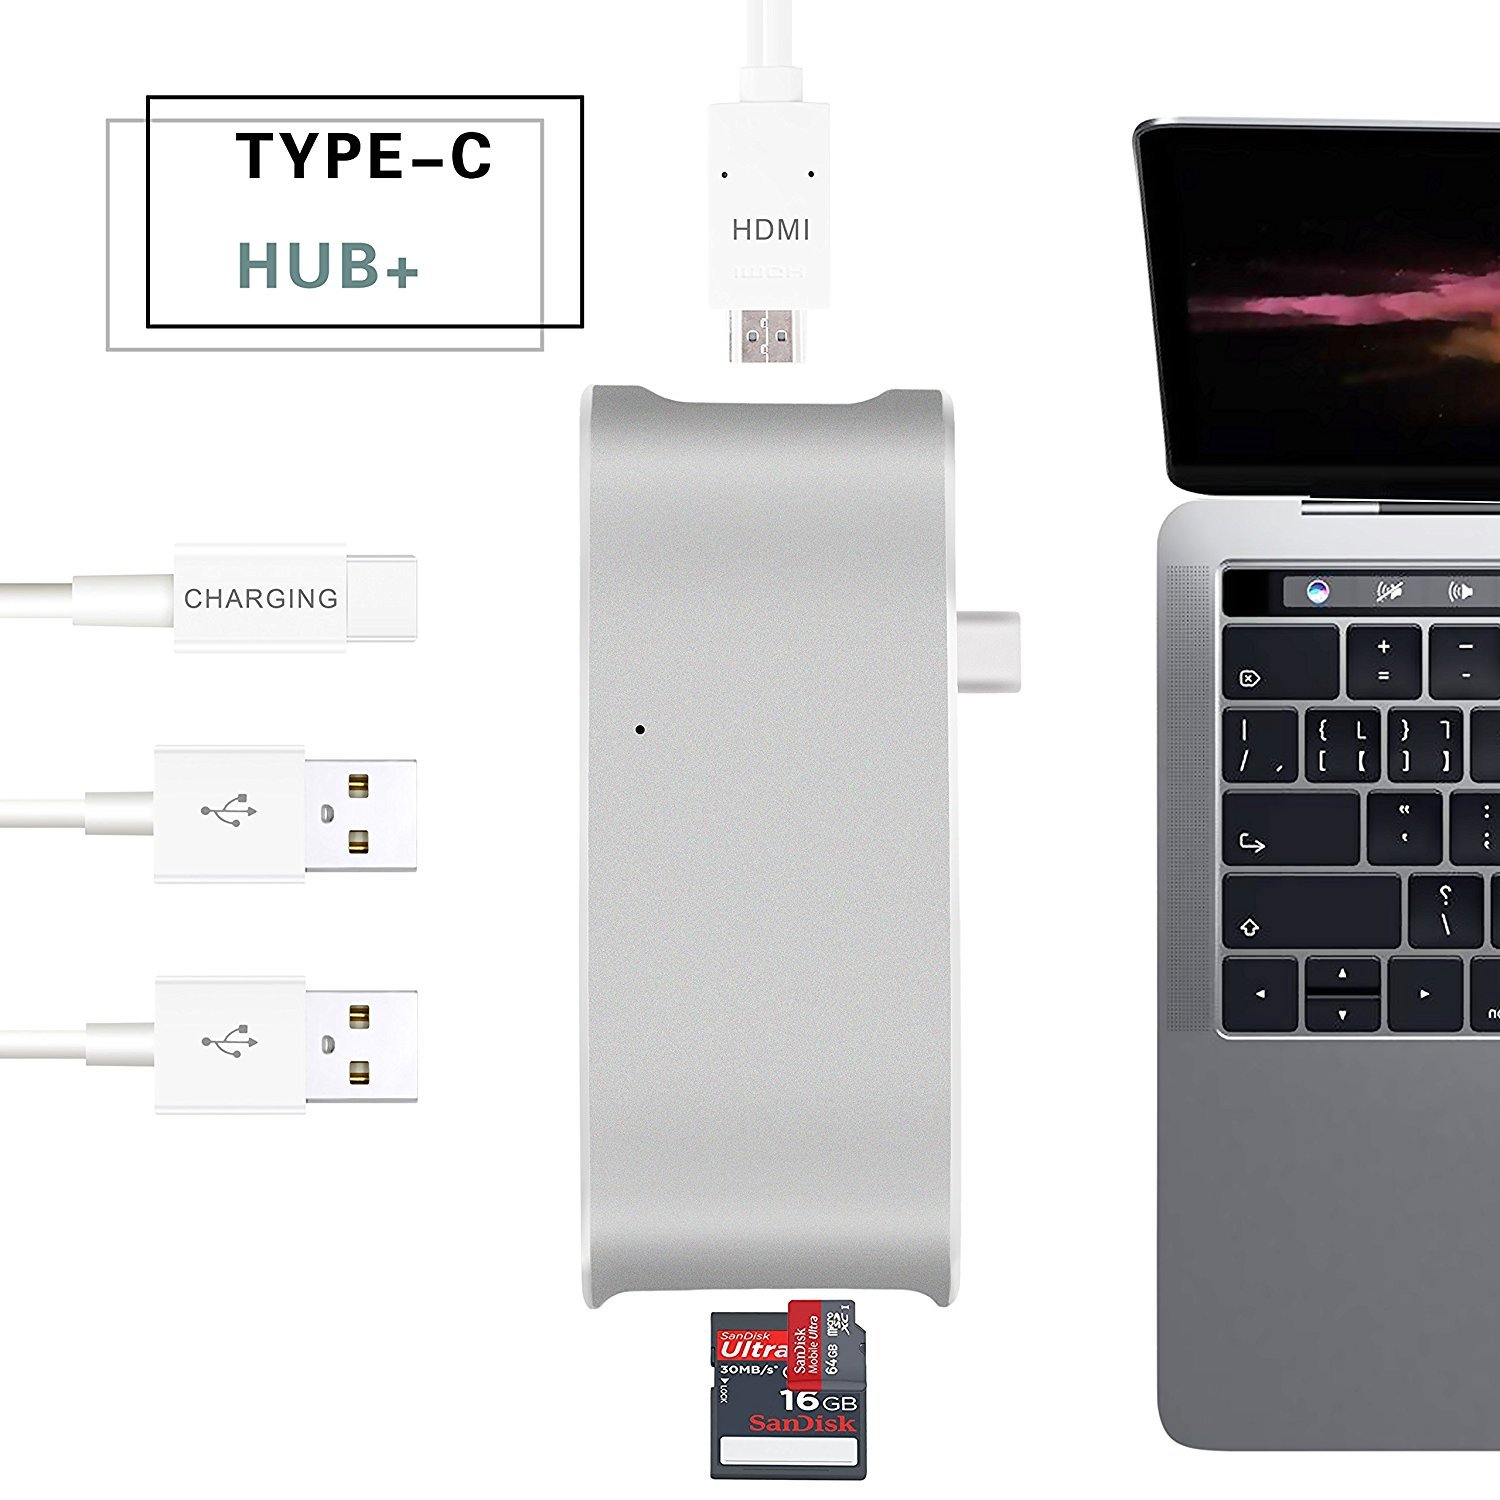 USB C Hub, Sunteck Type C Adapter 4k HDMI, SD + Micro Card Reader and 2 USB 3.0 Ports for MacBook 2017/2016, MacBook Pro 2017/2016, Google Chromebook, Dell XPS, Lenovo Yoga and More Type C Devices